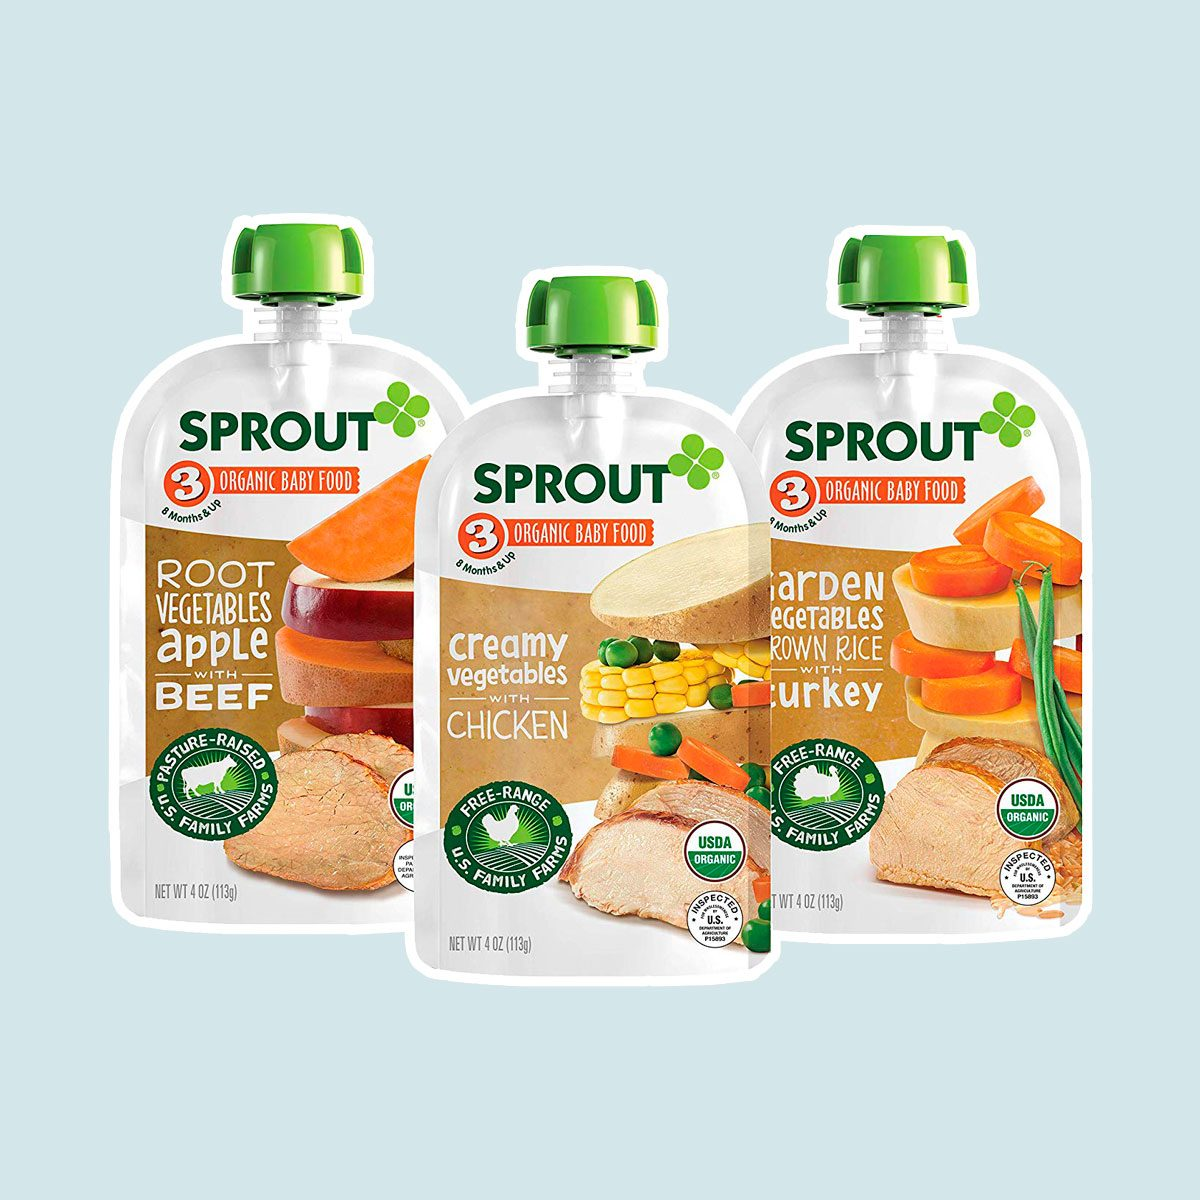 Sprout Organic Stage 3 Foods